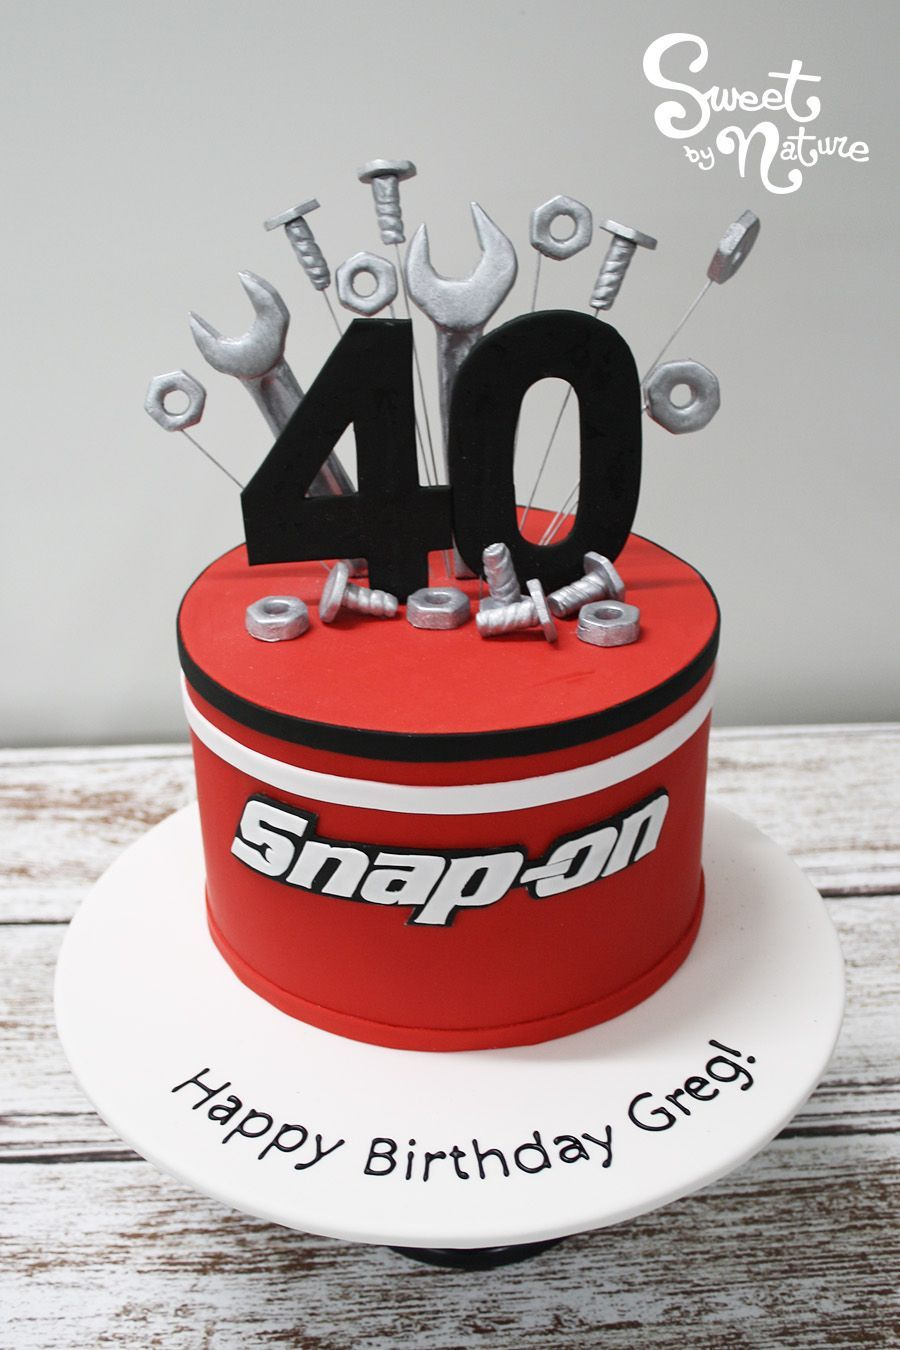 Happy 40th Birthday Greg We Hope You Enjoyed Your Tool Themed Cake To